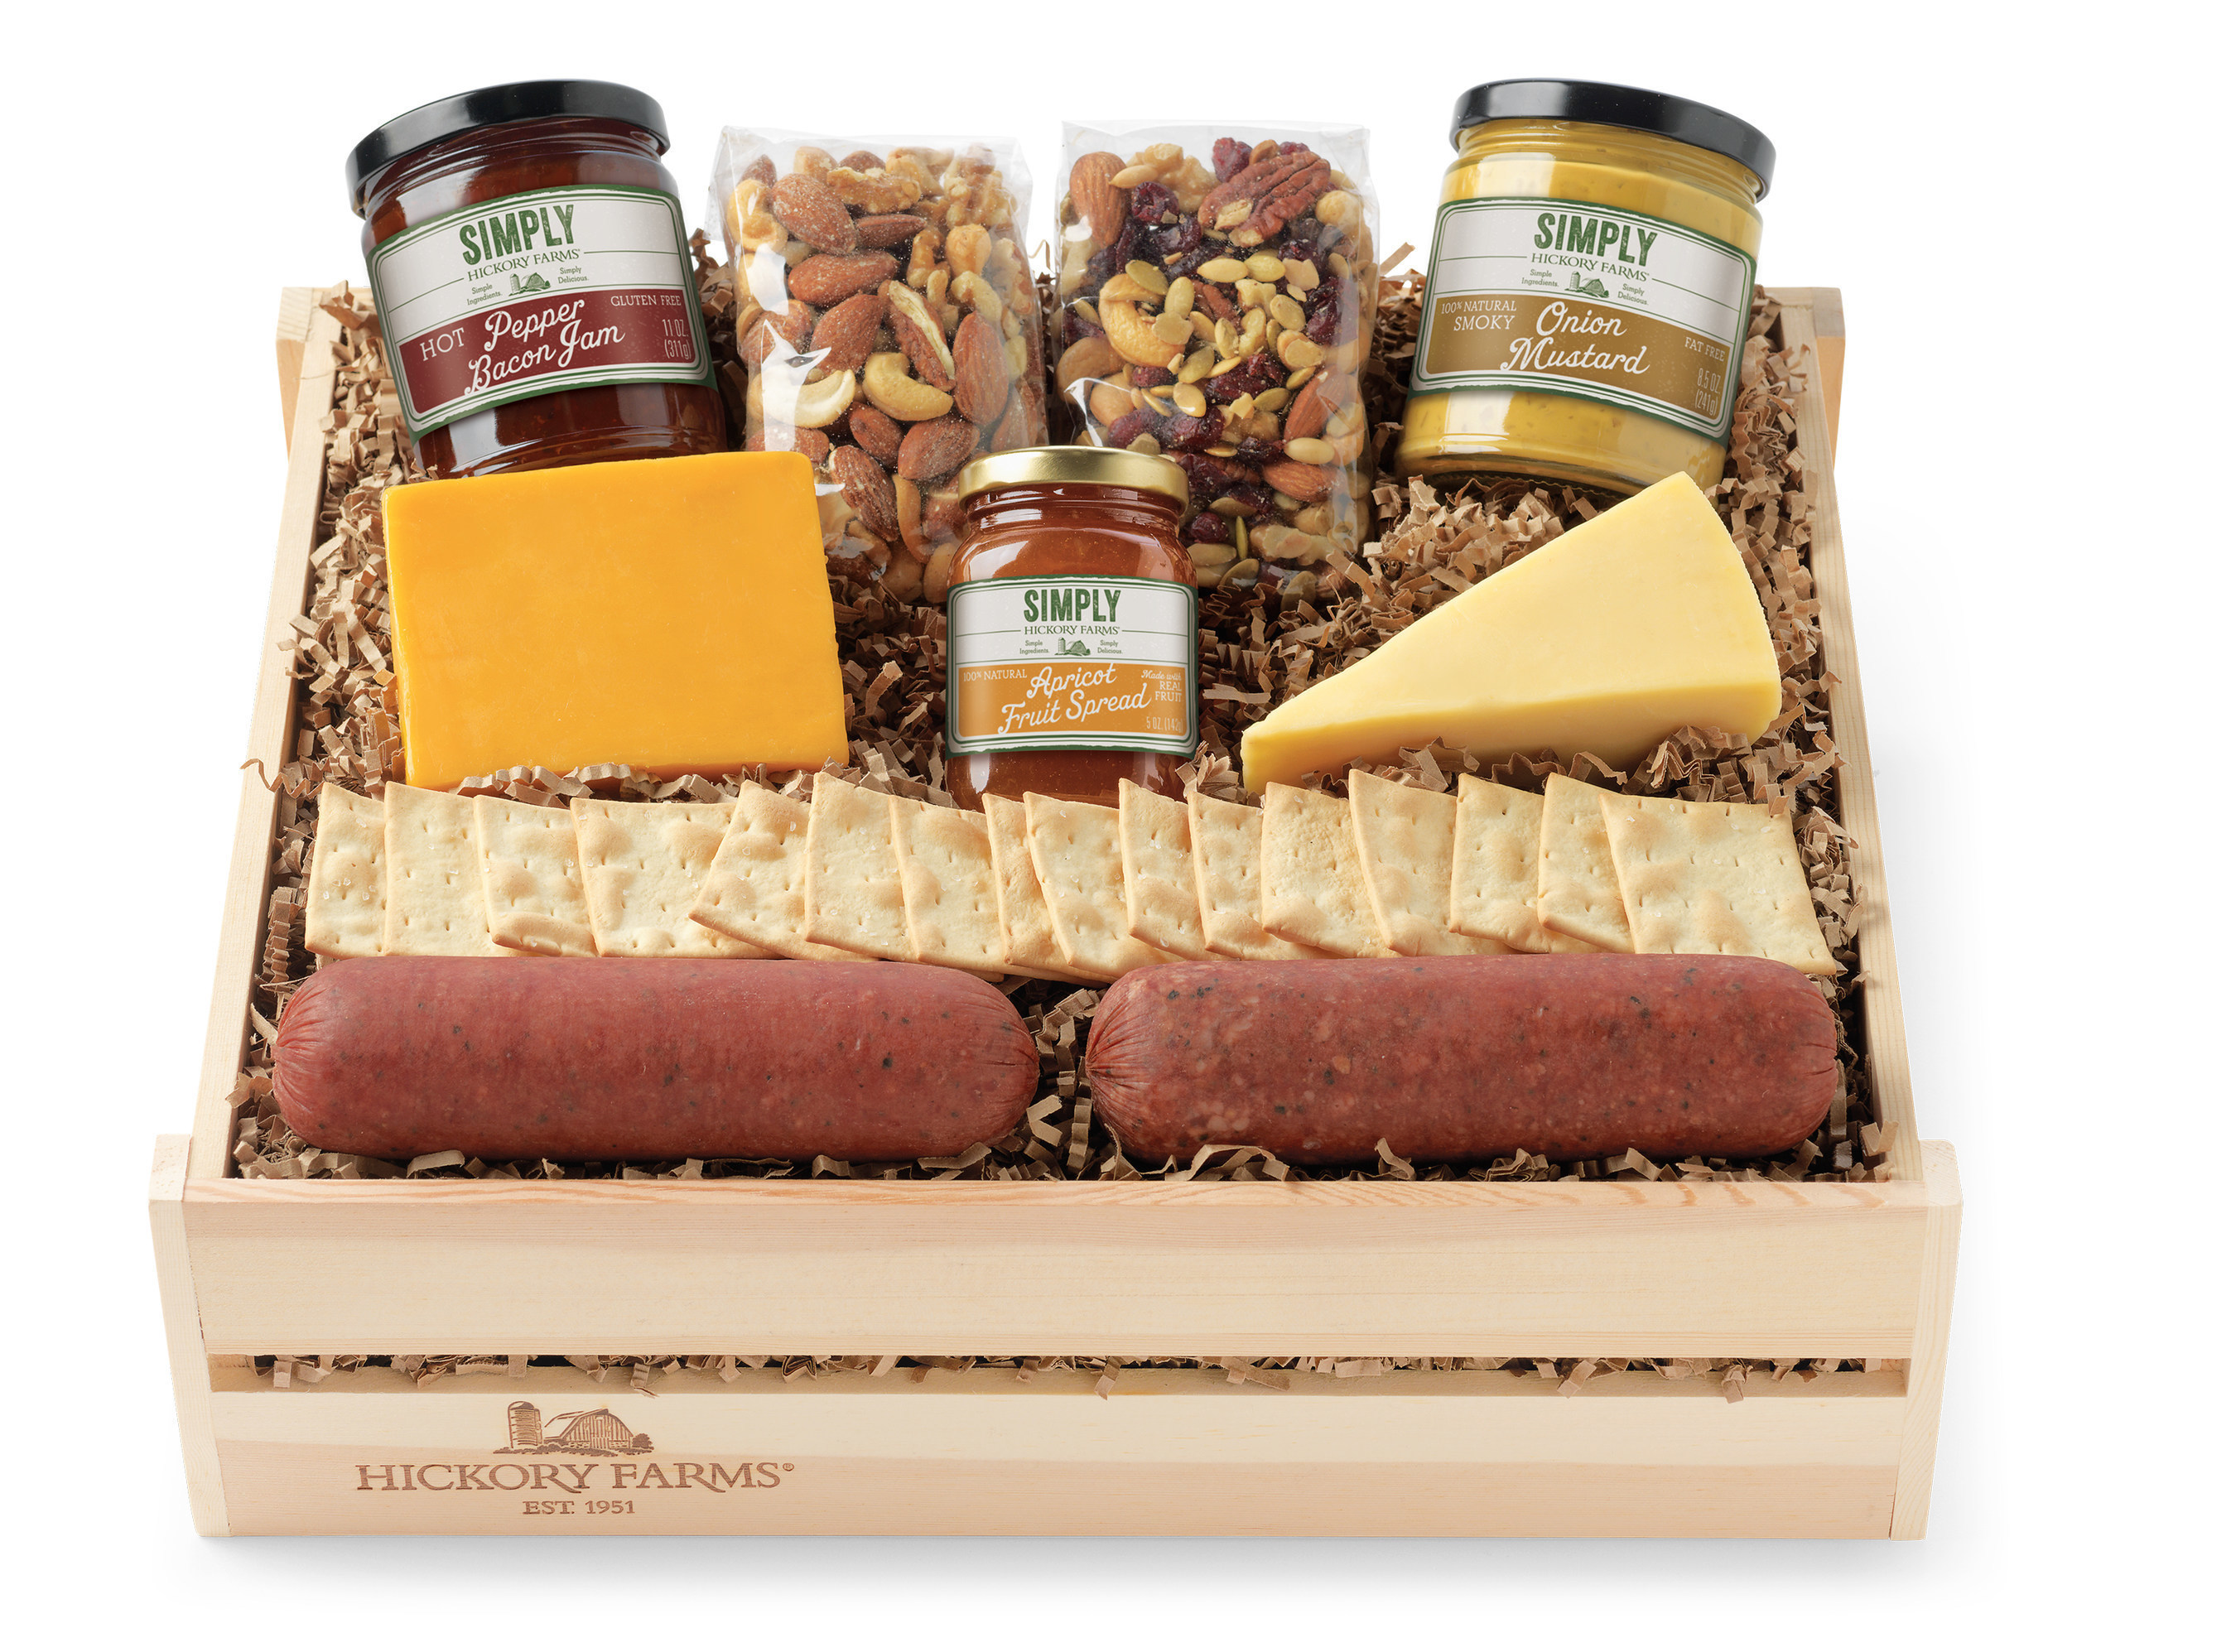 Hickory Farms introduces Simply Hickory Farms, a line of wholesome sausage, cheeses and condiments made from all-natural, simple ingredients containing no preservatives, artificial flavors or colors.